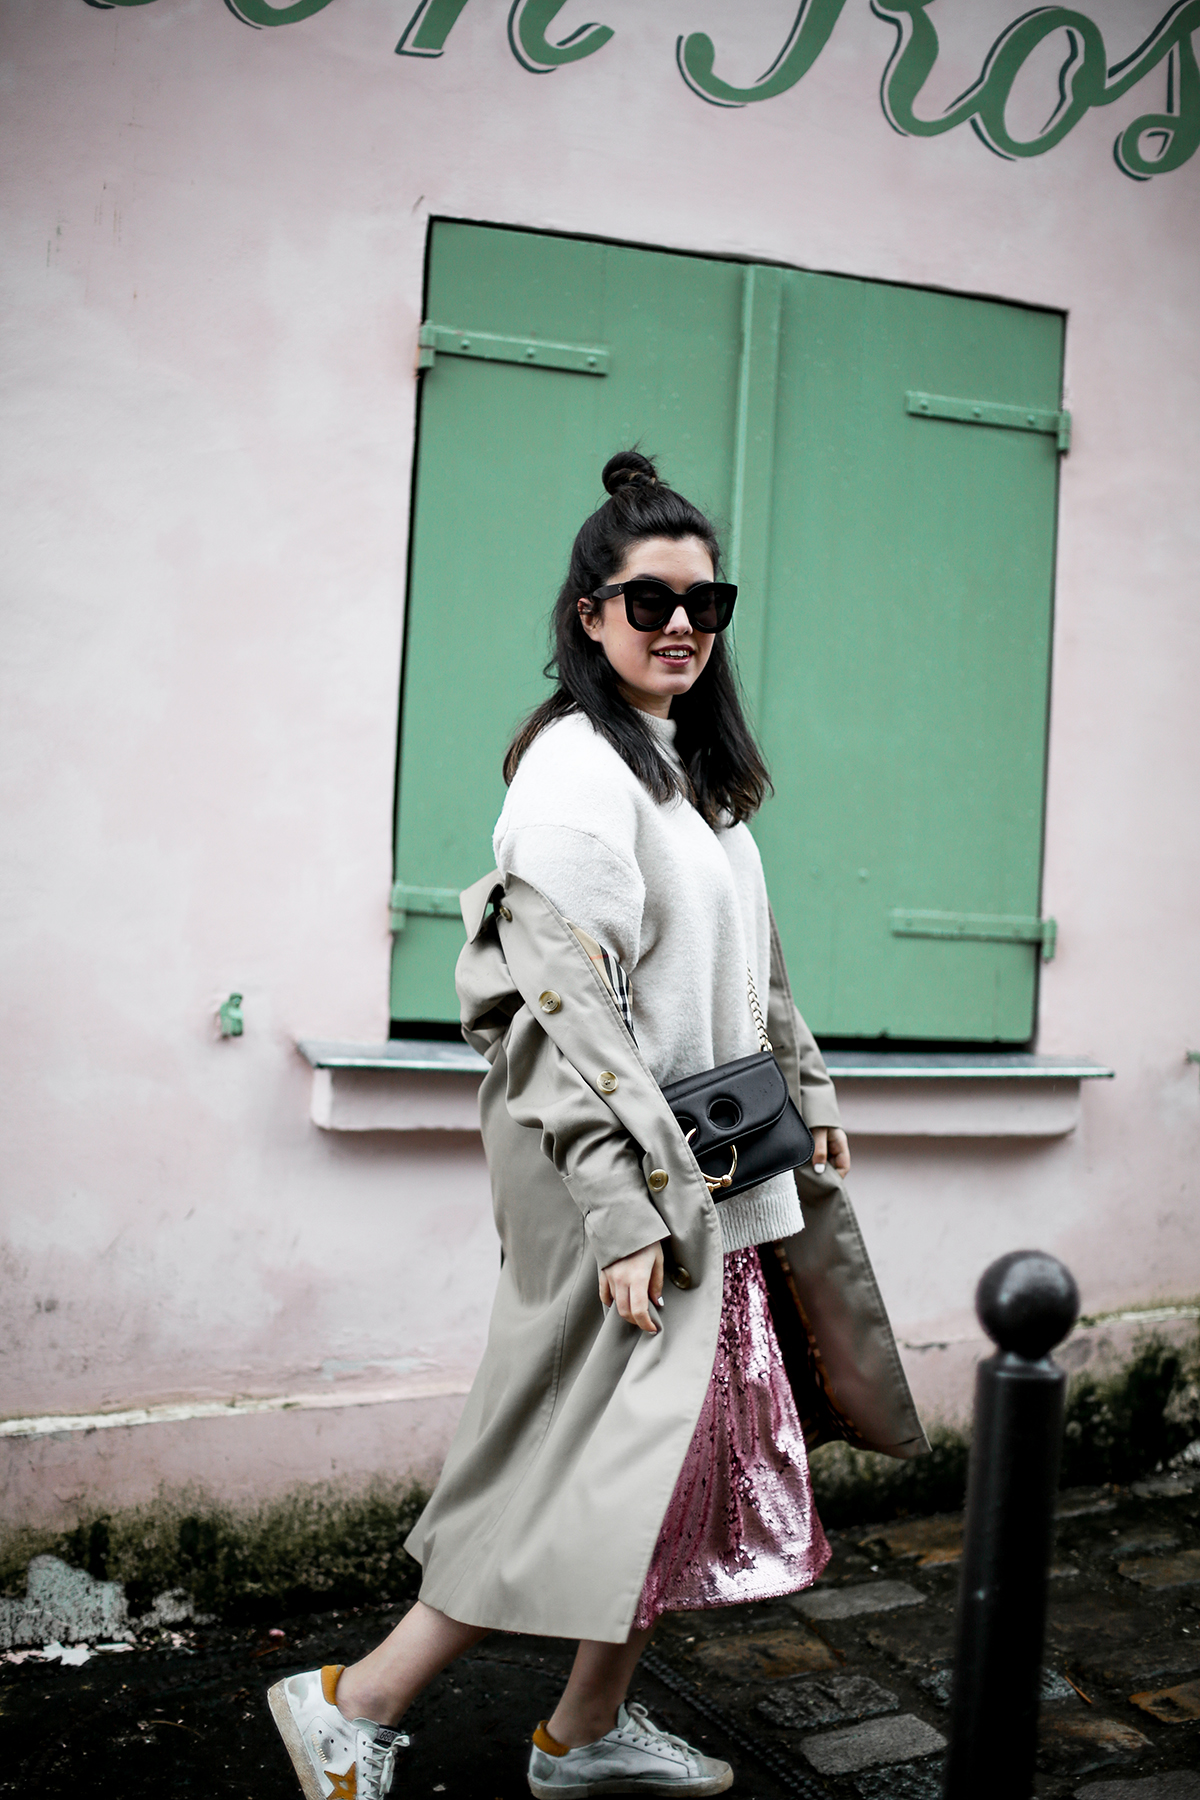 pink-sequin-skirt-hm-golden-goose-sneakers-vintage-burberry-trench-streetstyle4